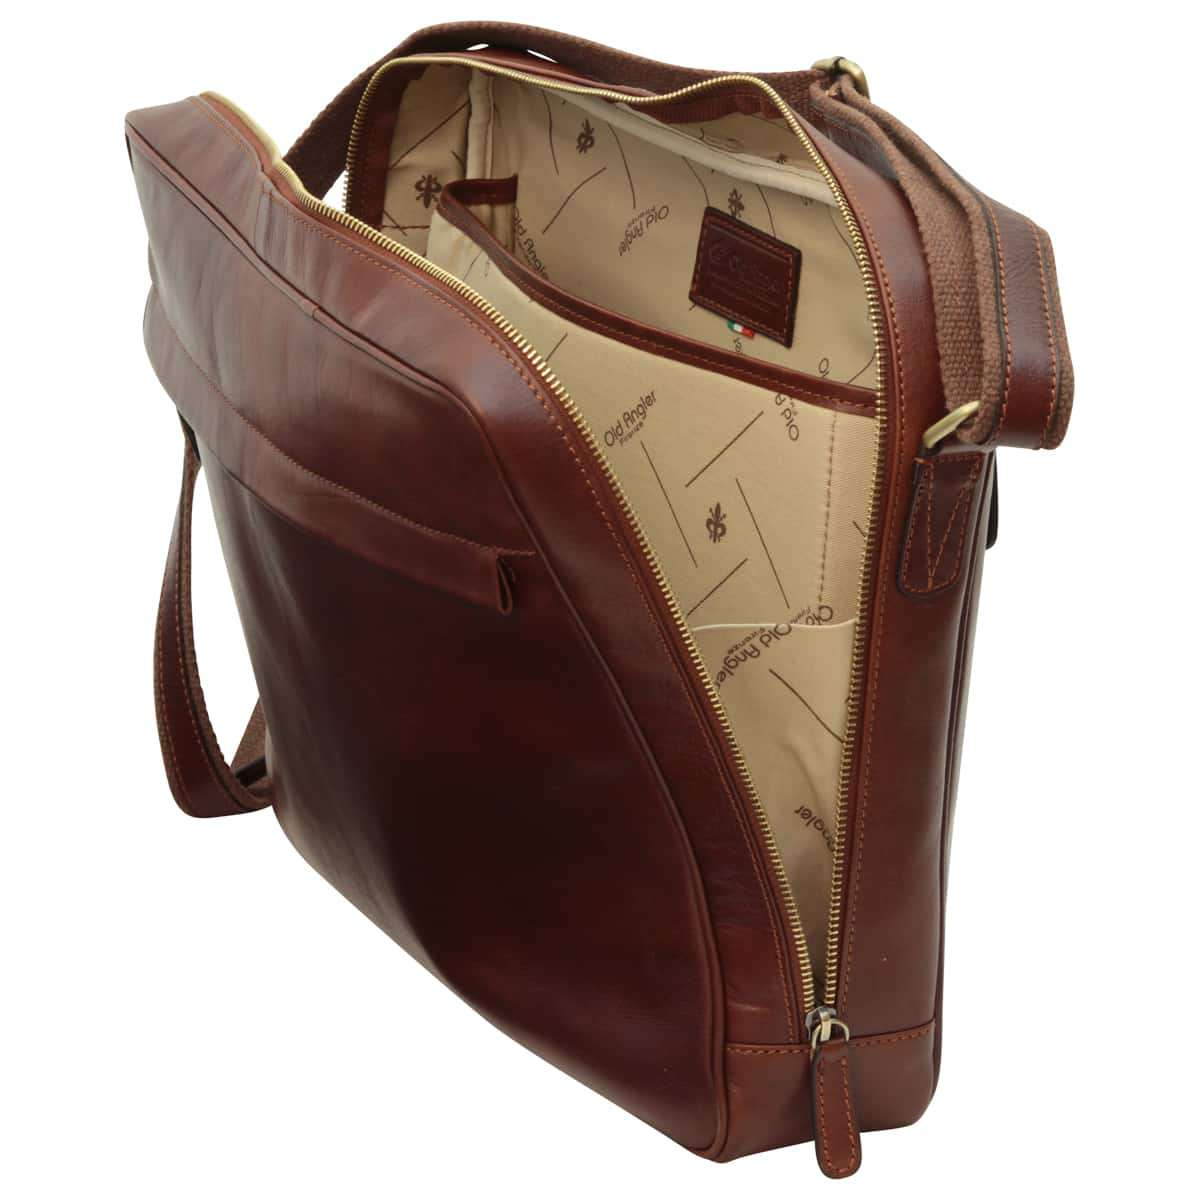 Vachetta Leather Messenger - Brown | 409189MA US | Old Angler Firenze